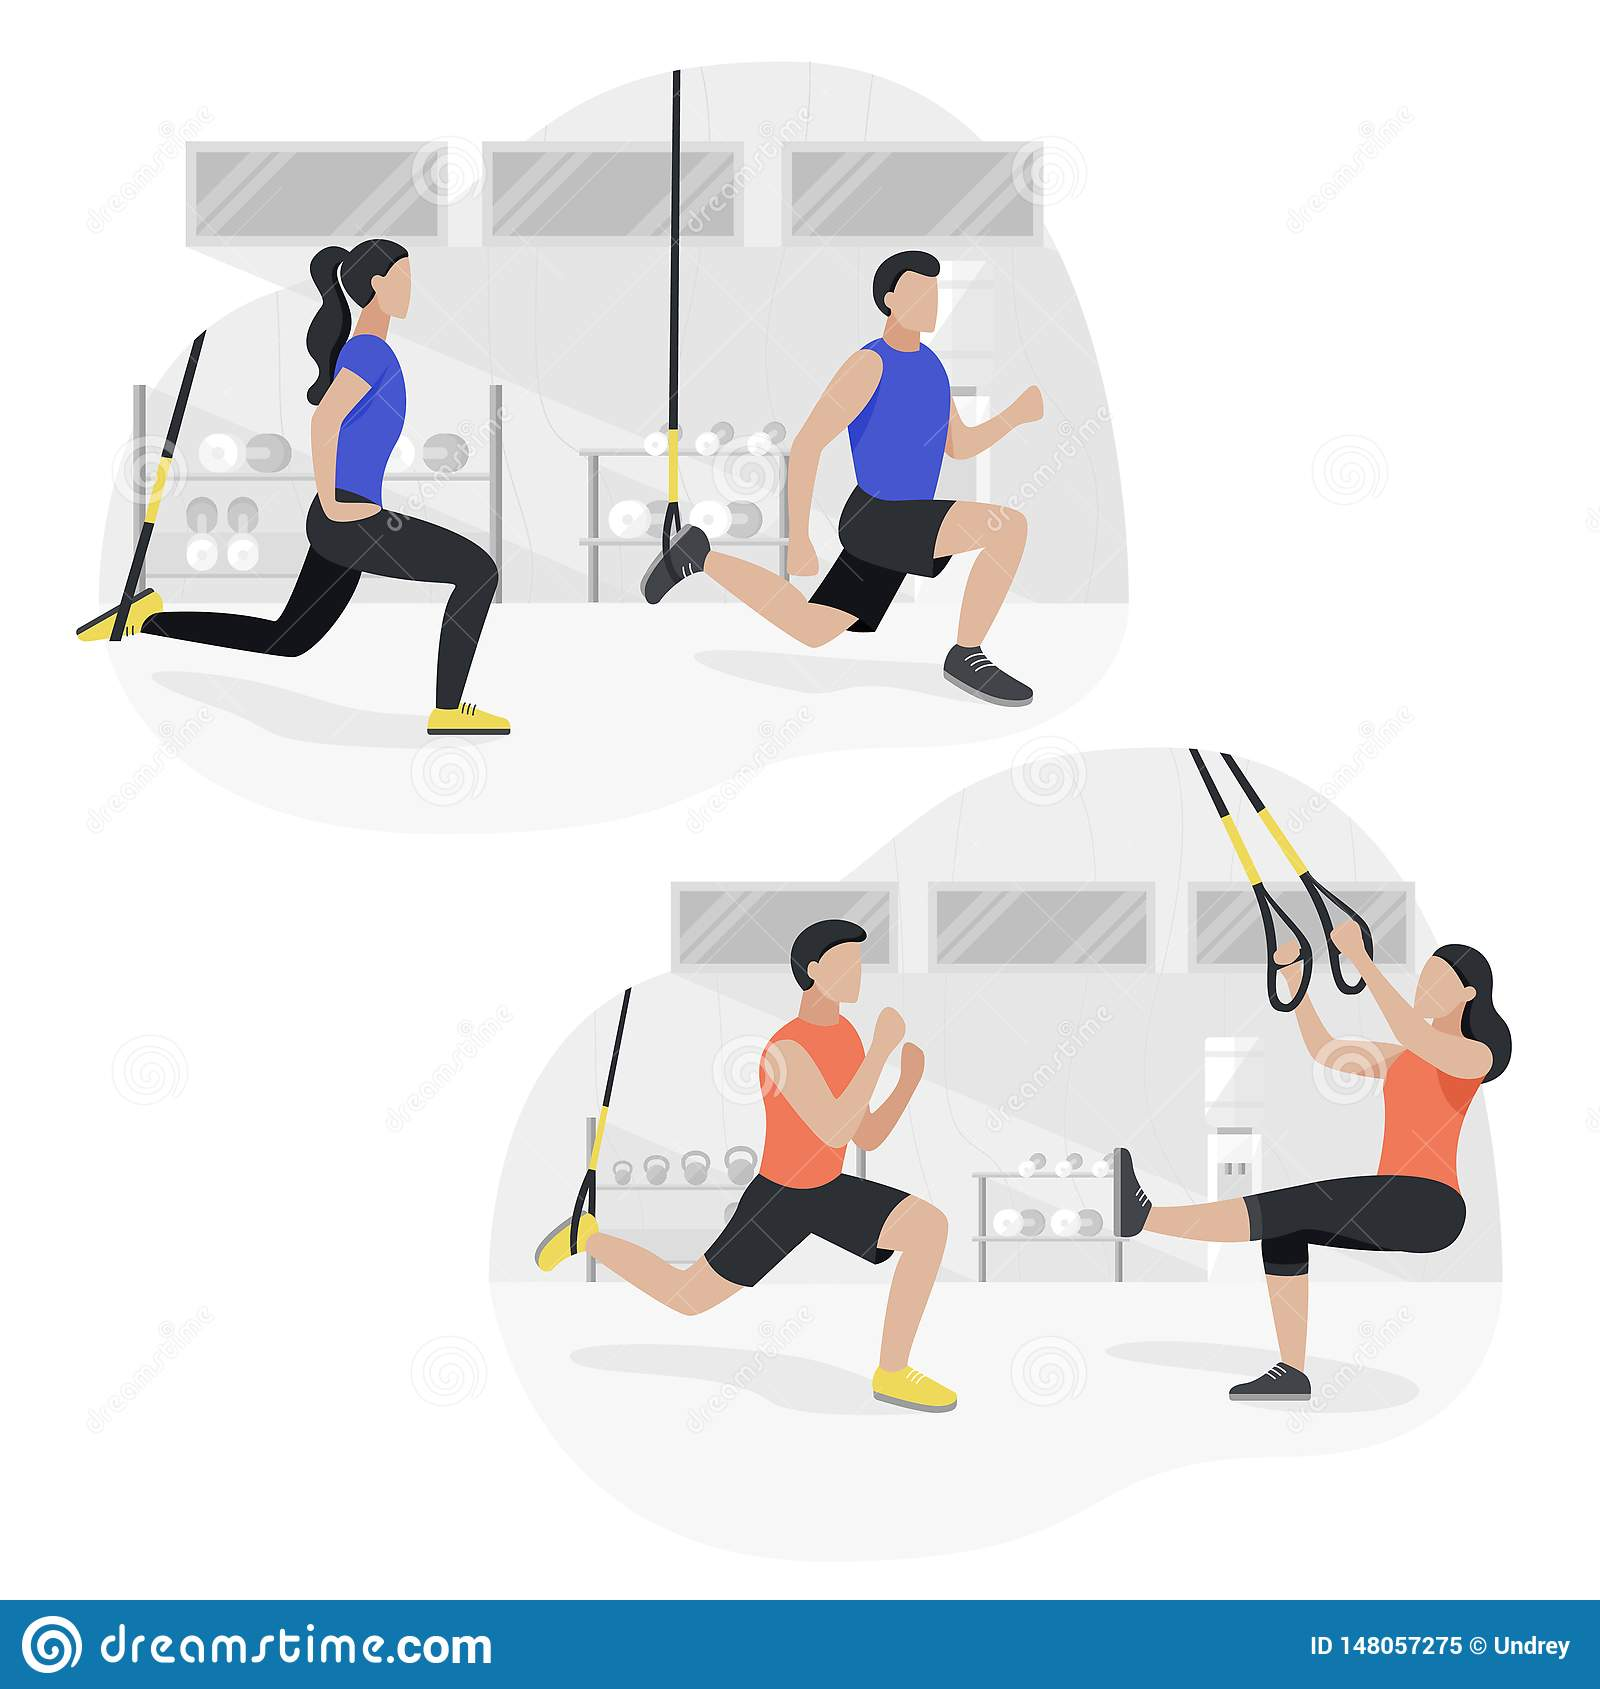 Fit People Working Out On Trx Doing Bodyweight Exercises